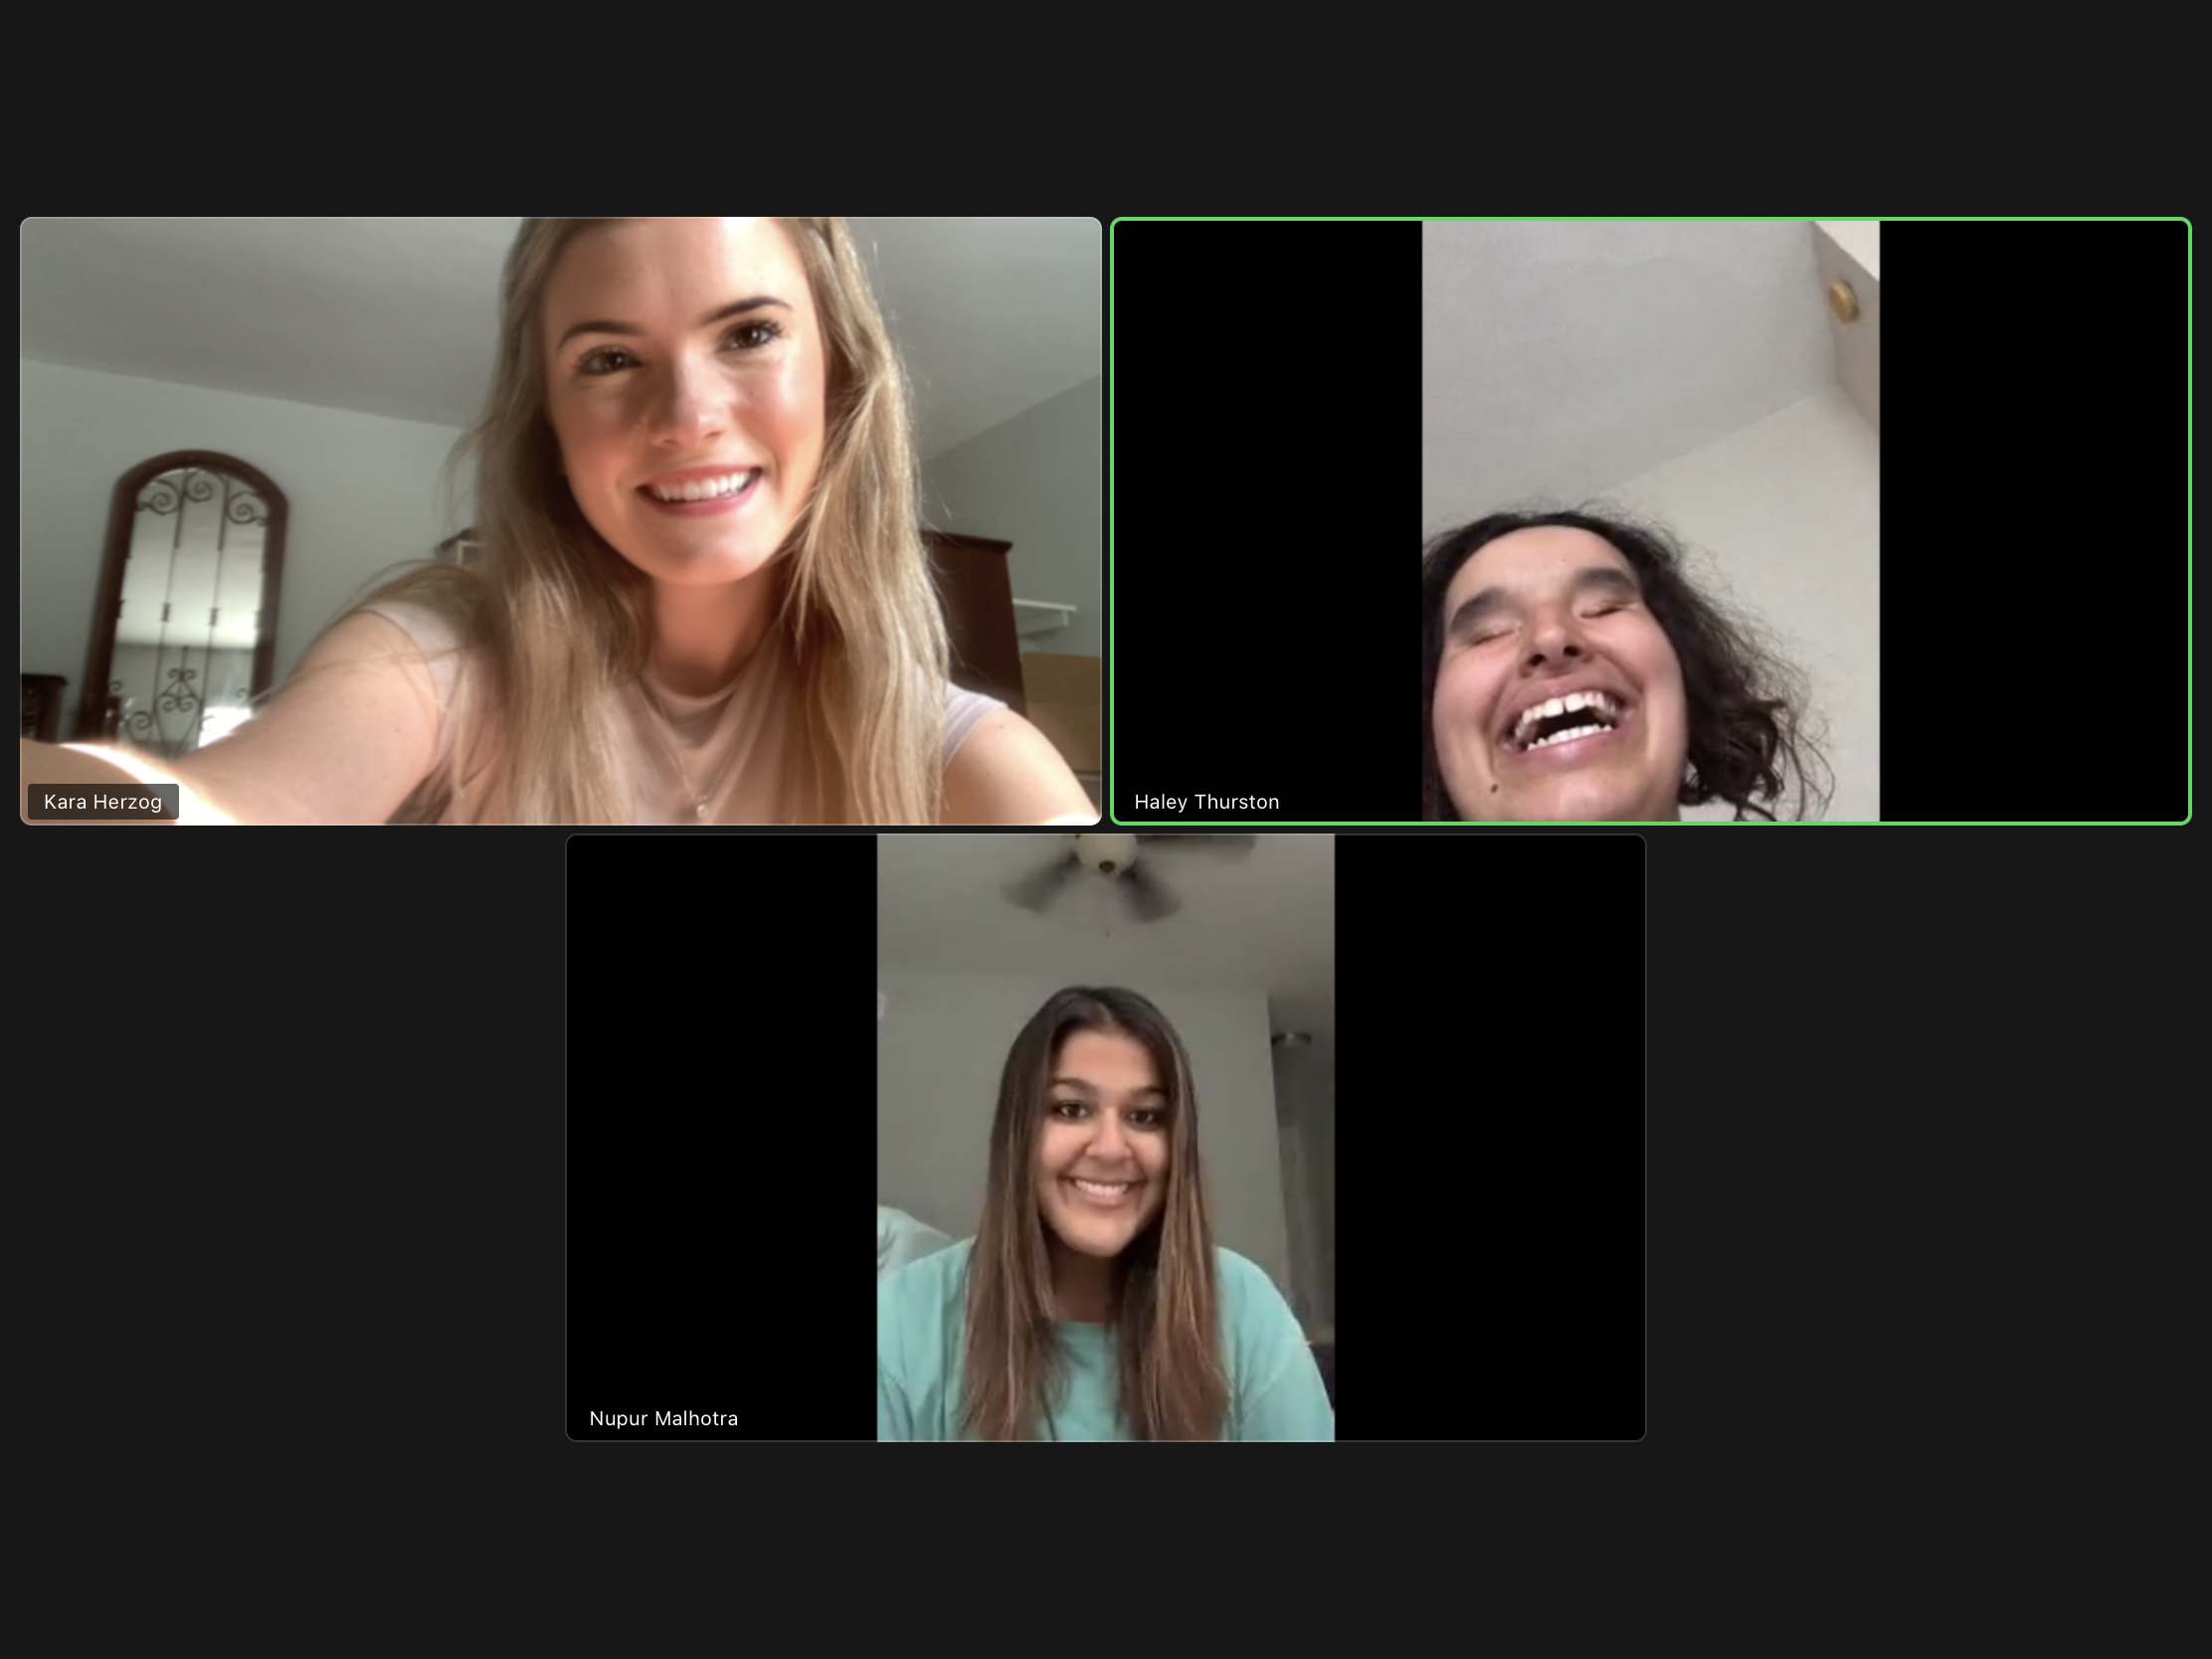 Zoom meeting with Kara, Nupur, and Haley Thurston